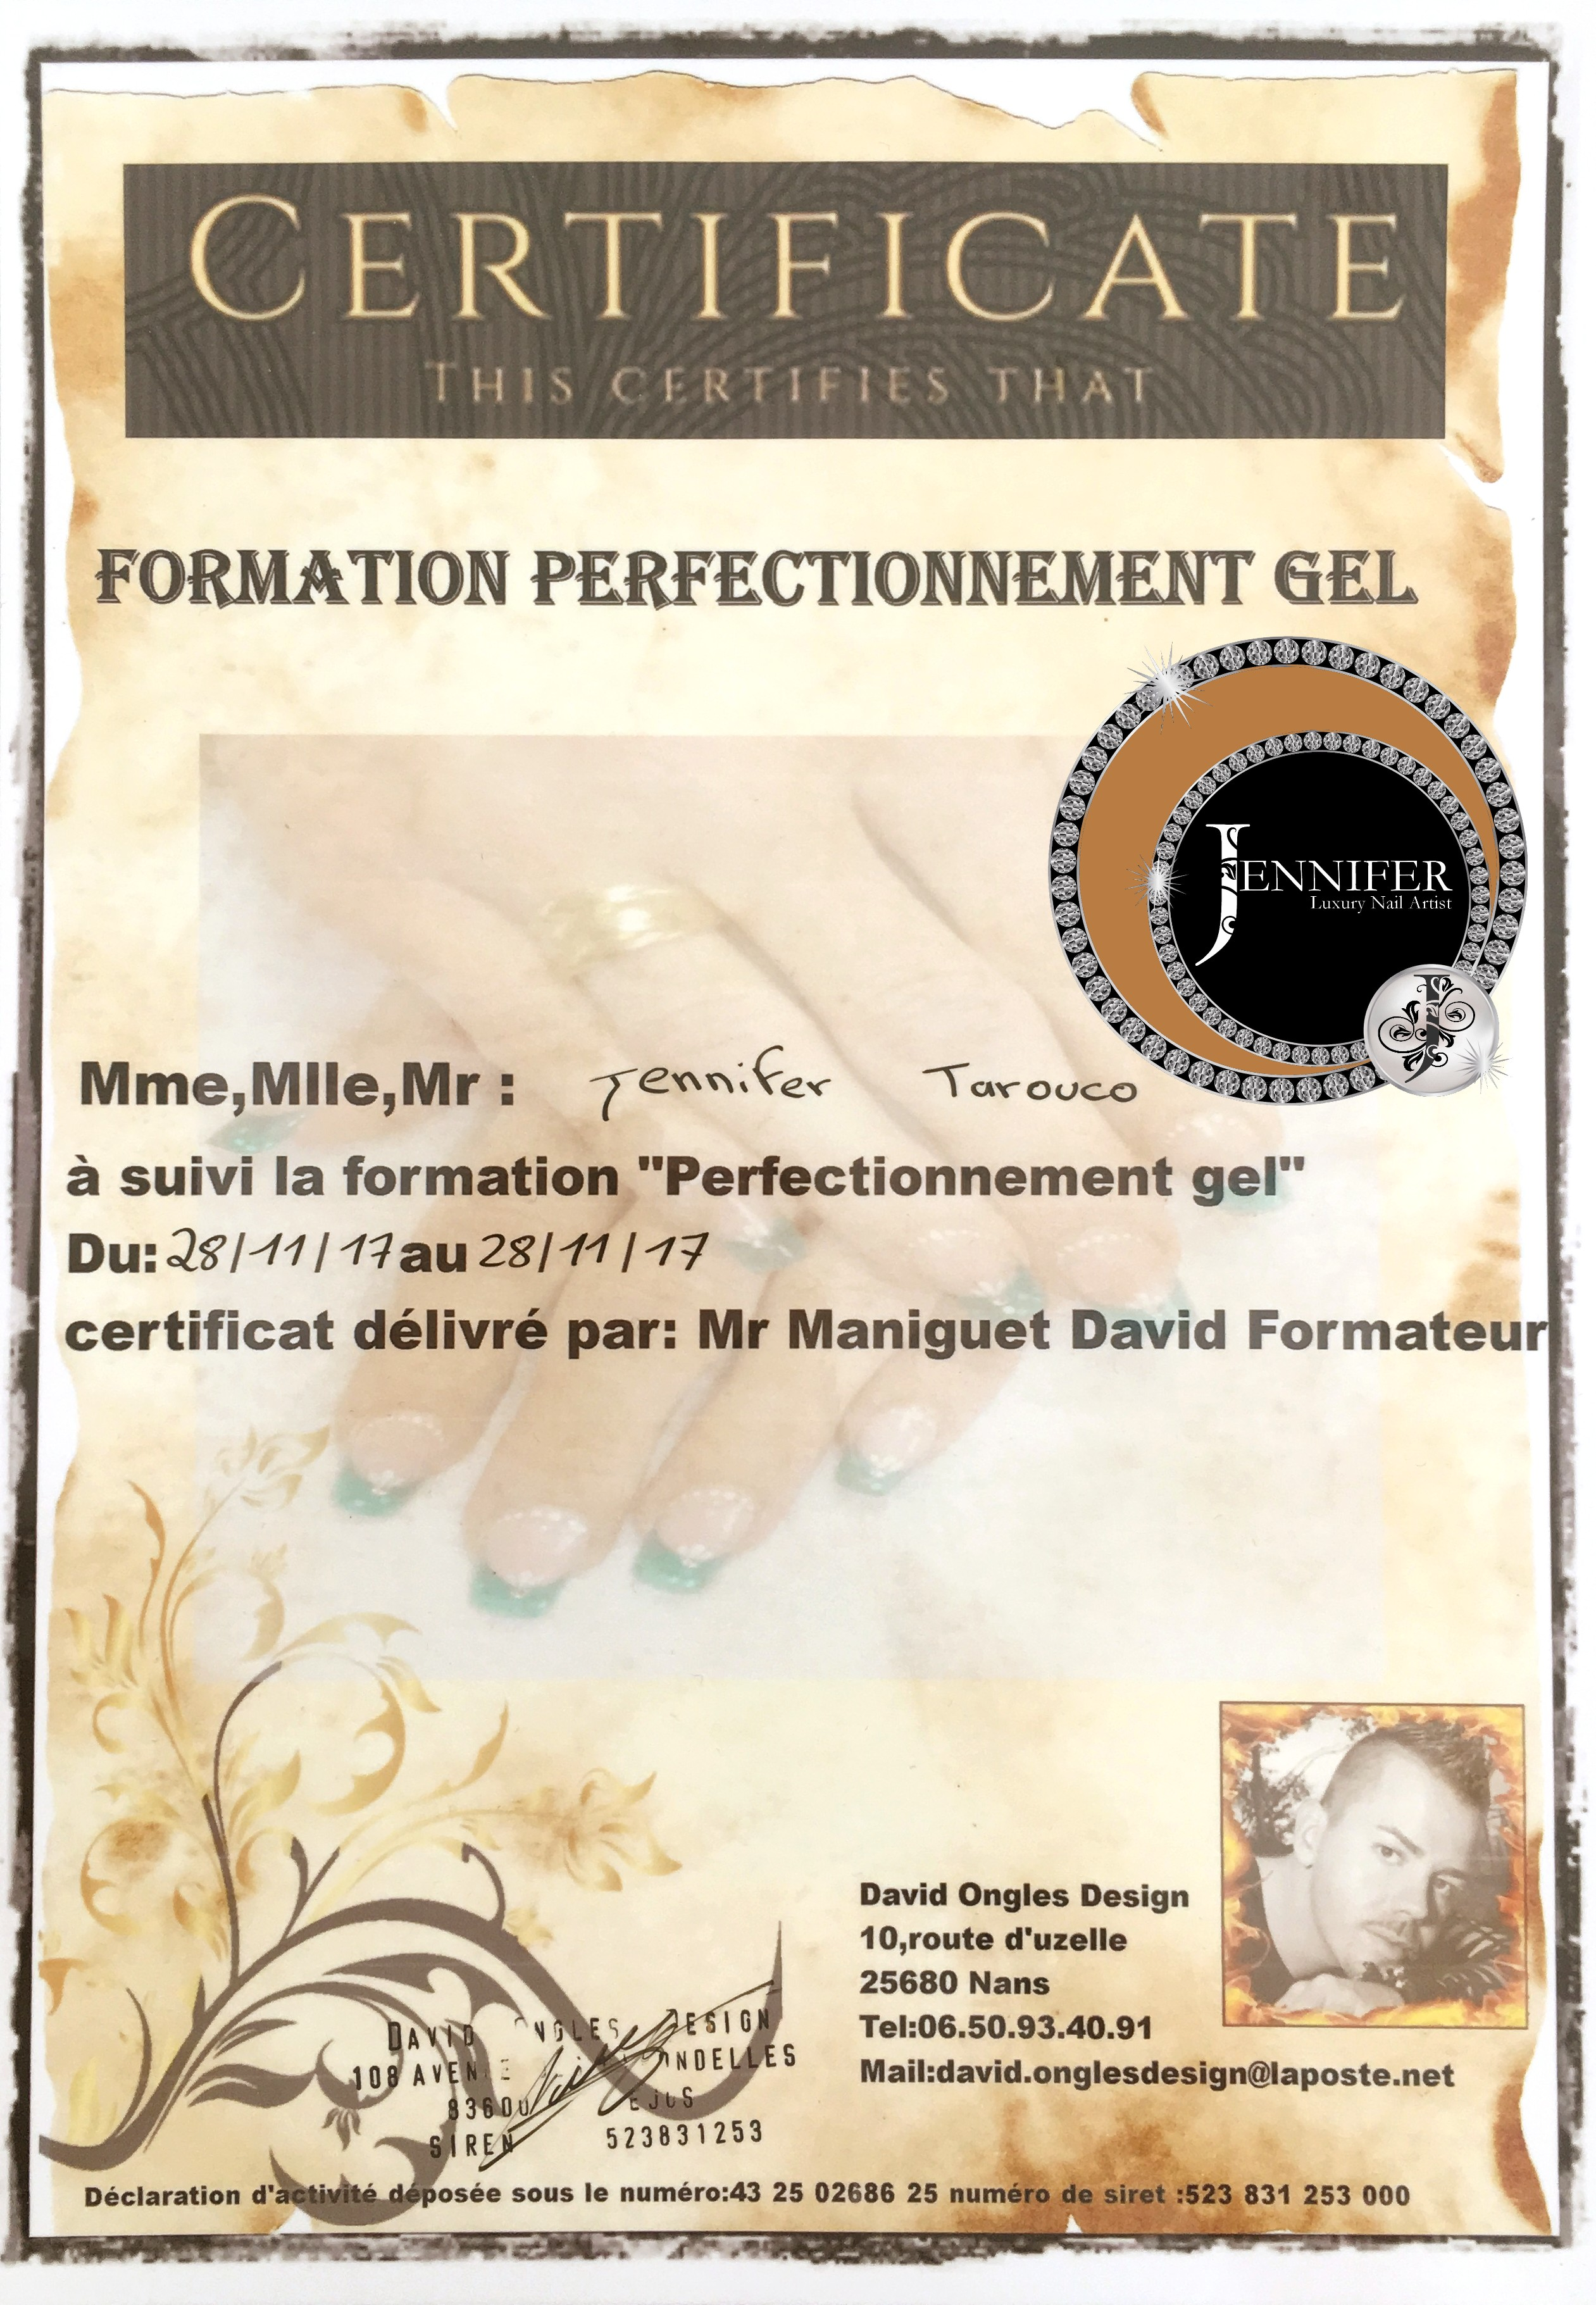 Certificat Perfectionnement gel David